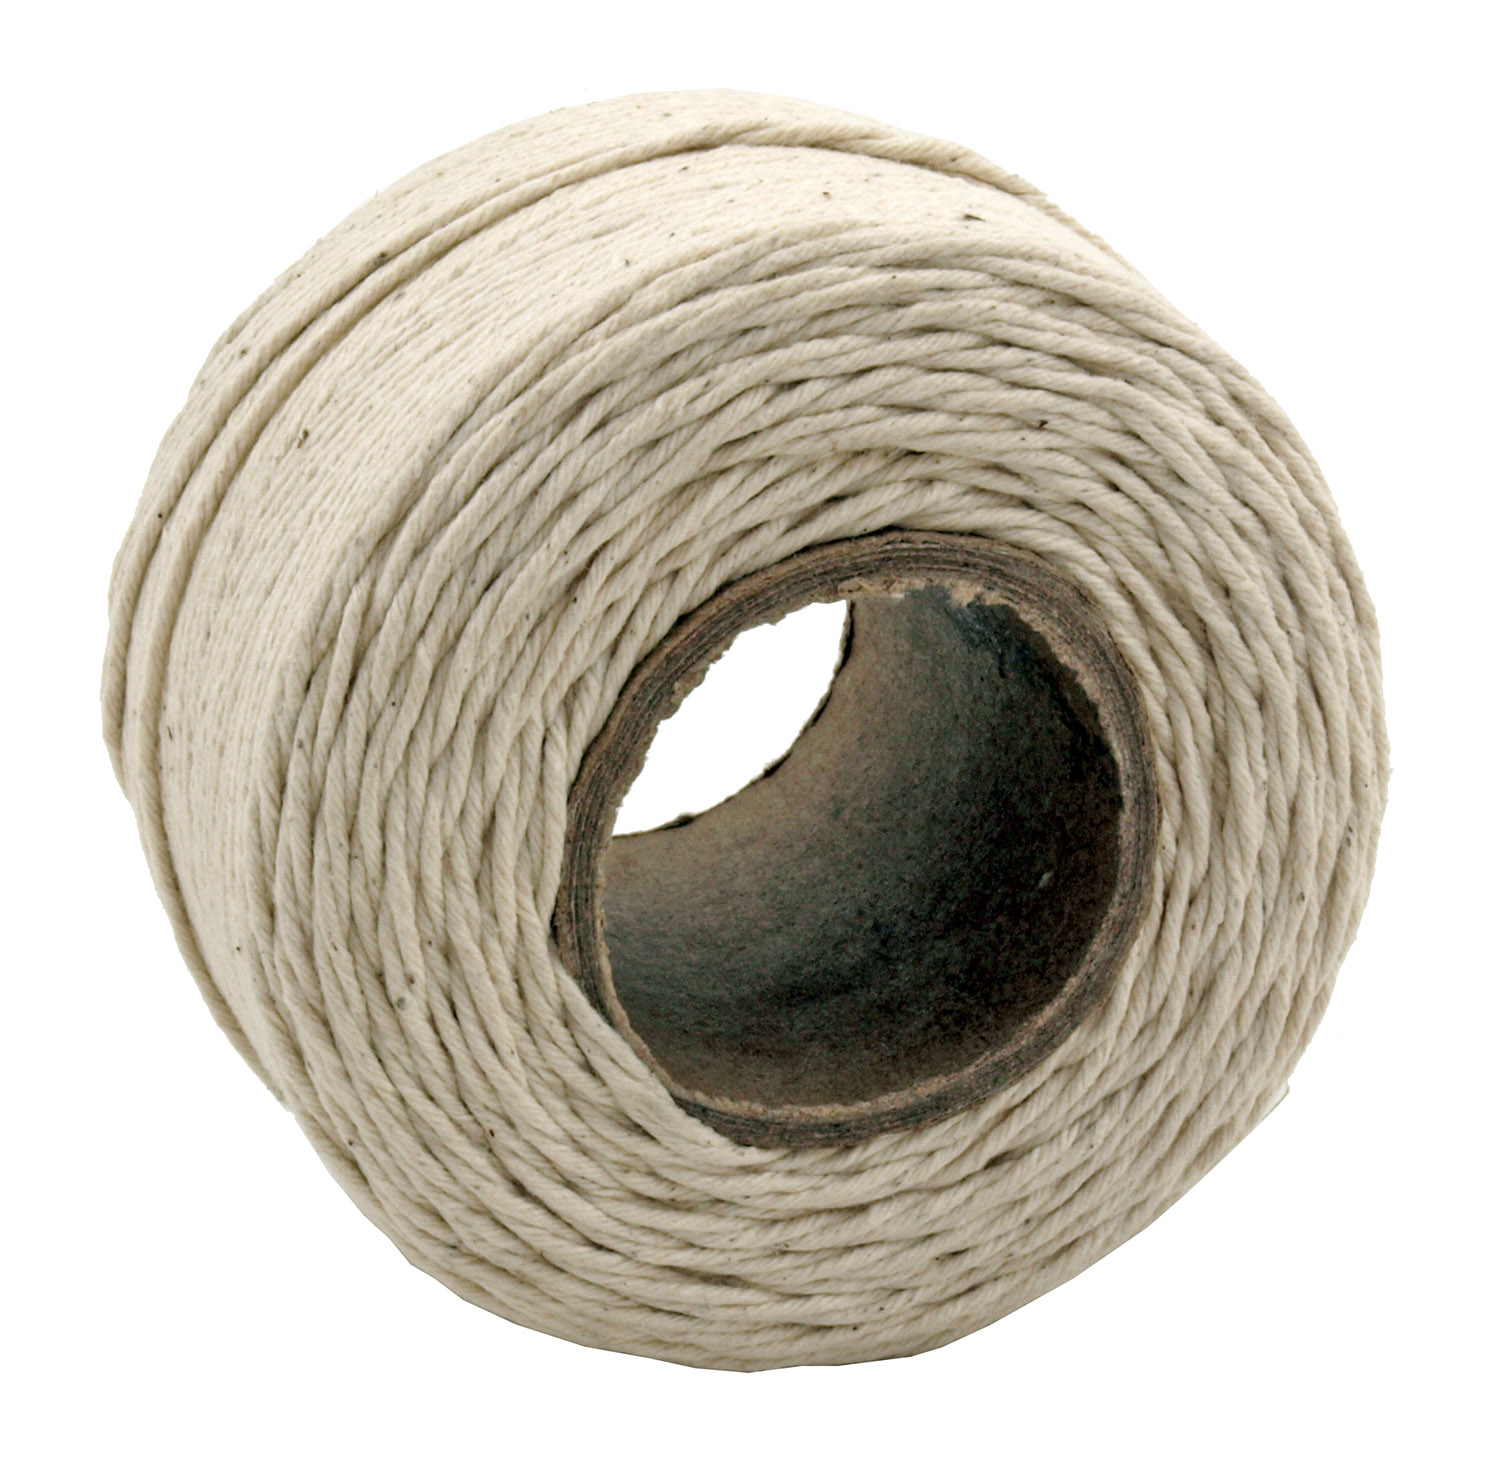 420' Twisted Cotton Twine Ball of String